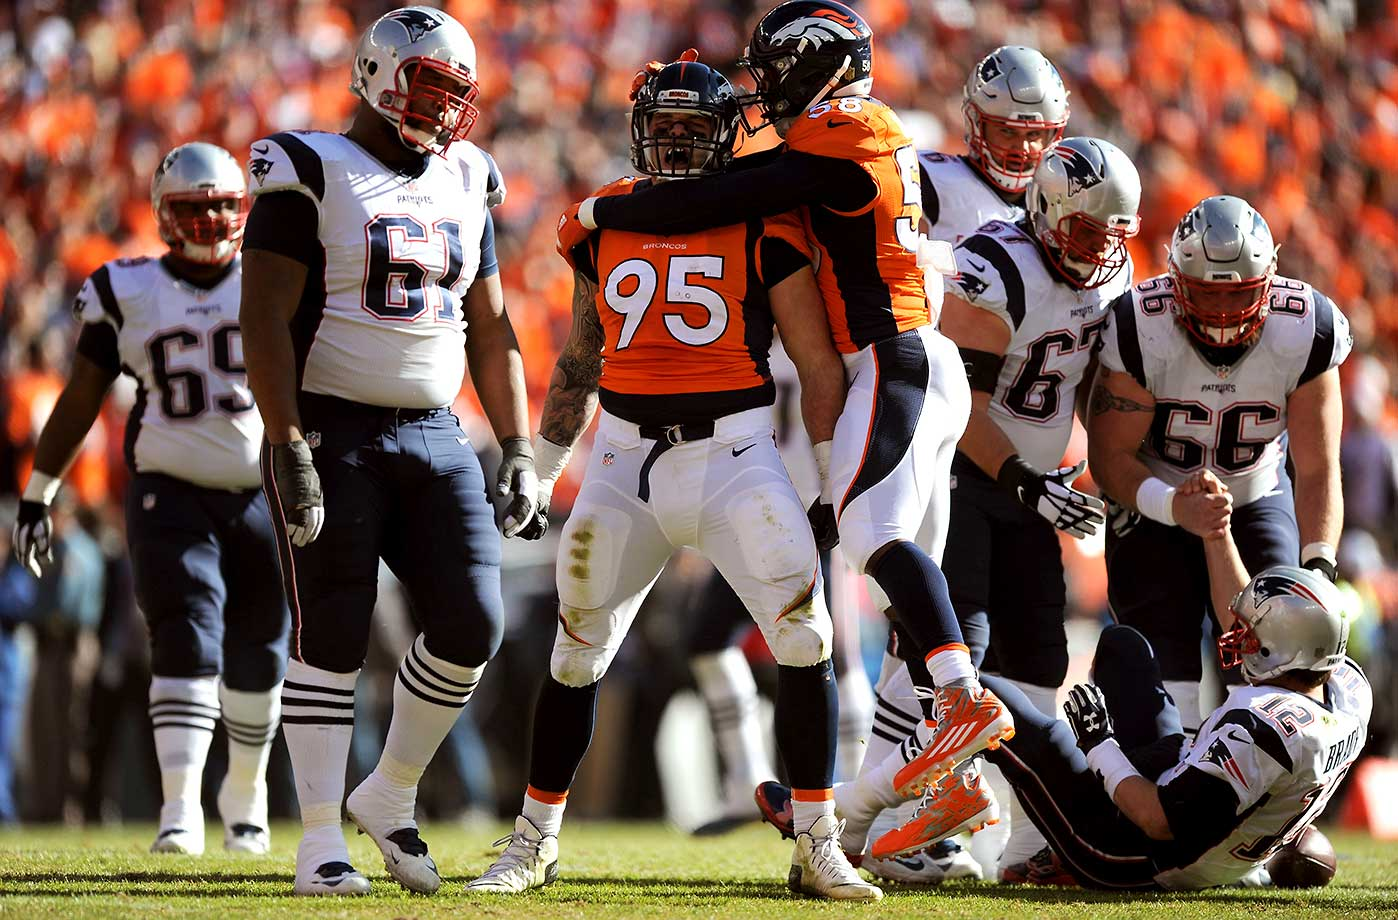 Derek Wolfe celebrates with Von Miller after a sack on Tom Brady.